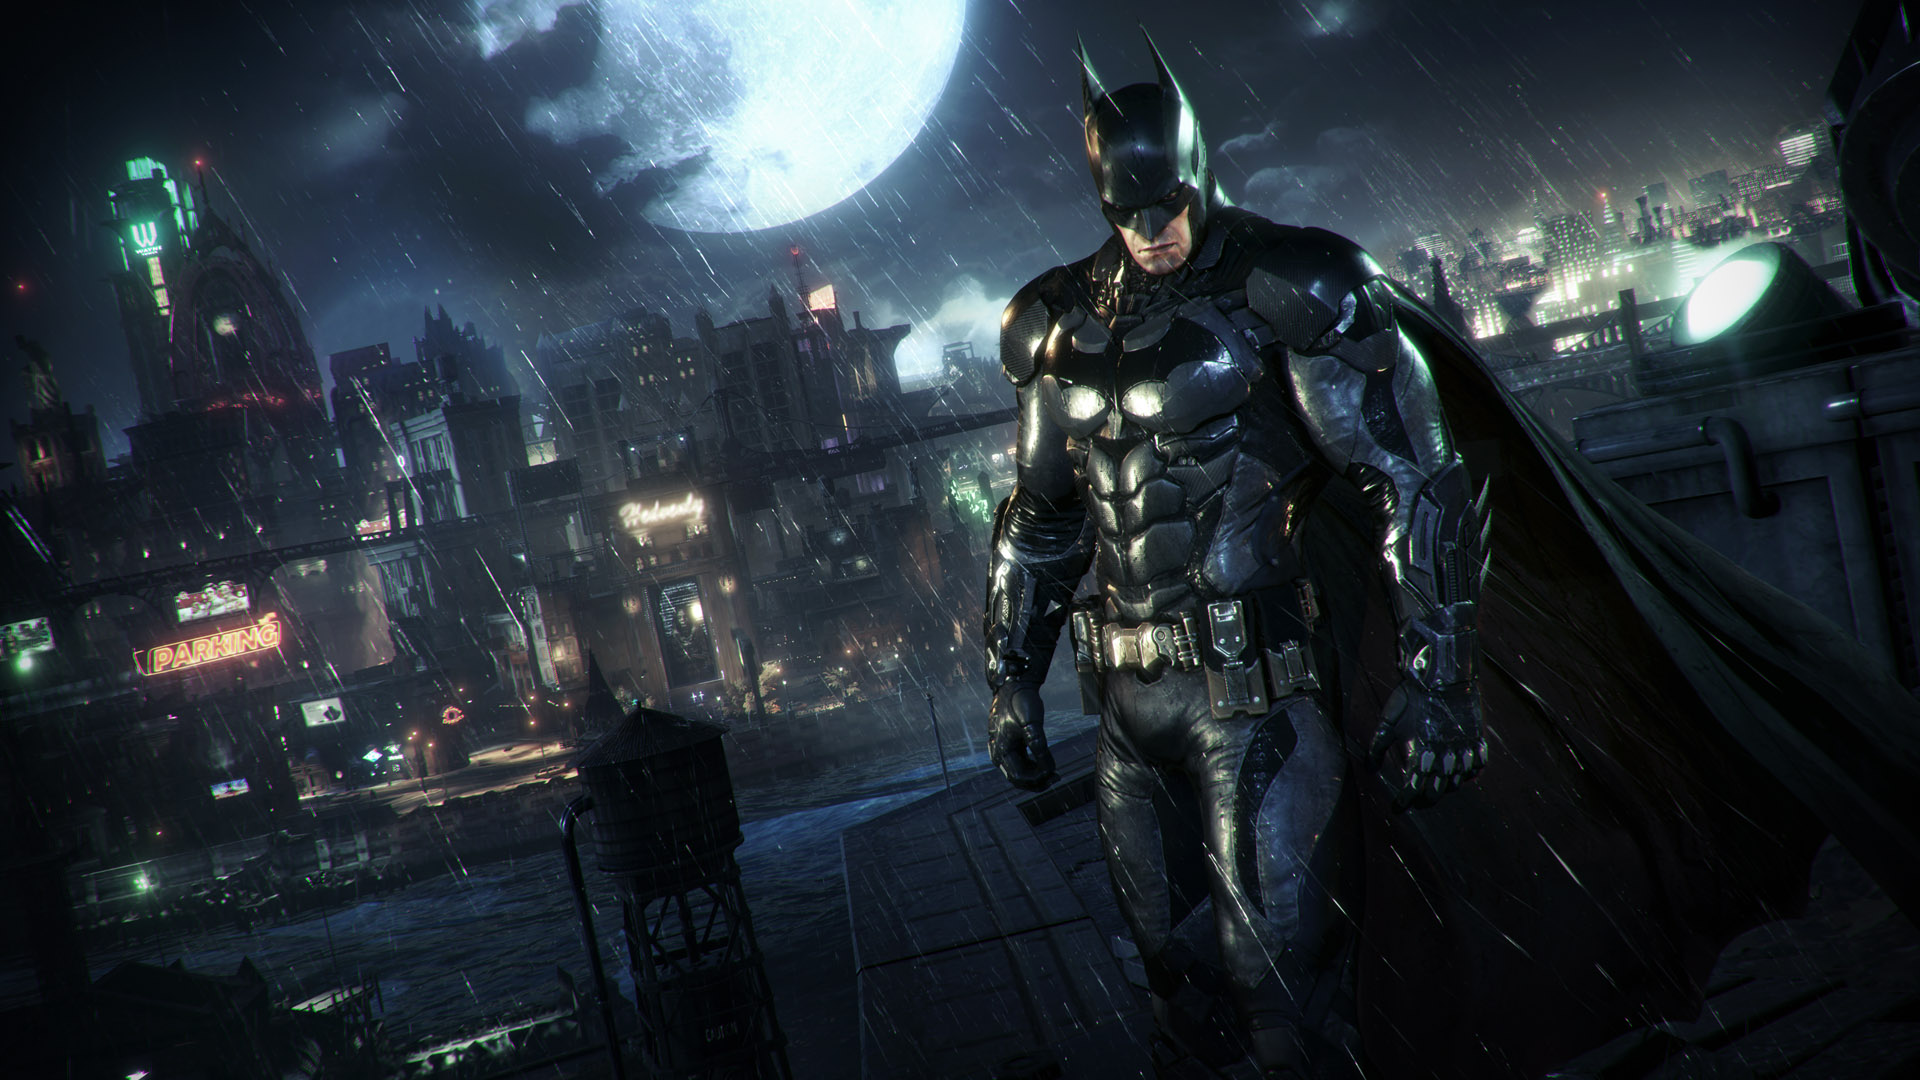 Batgirl expansion included in $40 Batman: Arkham Knight season pass